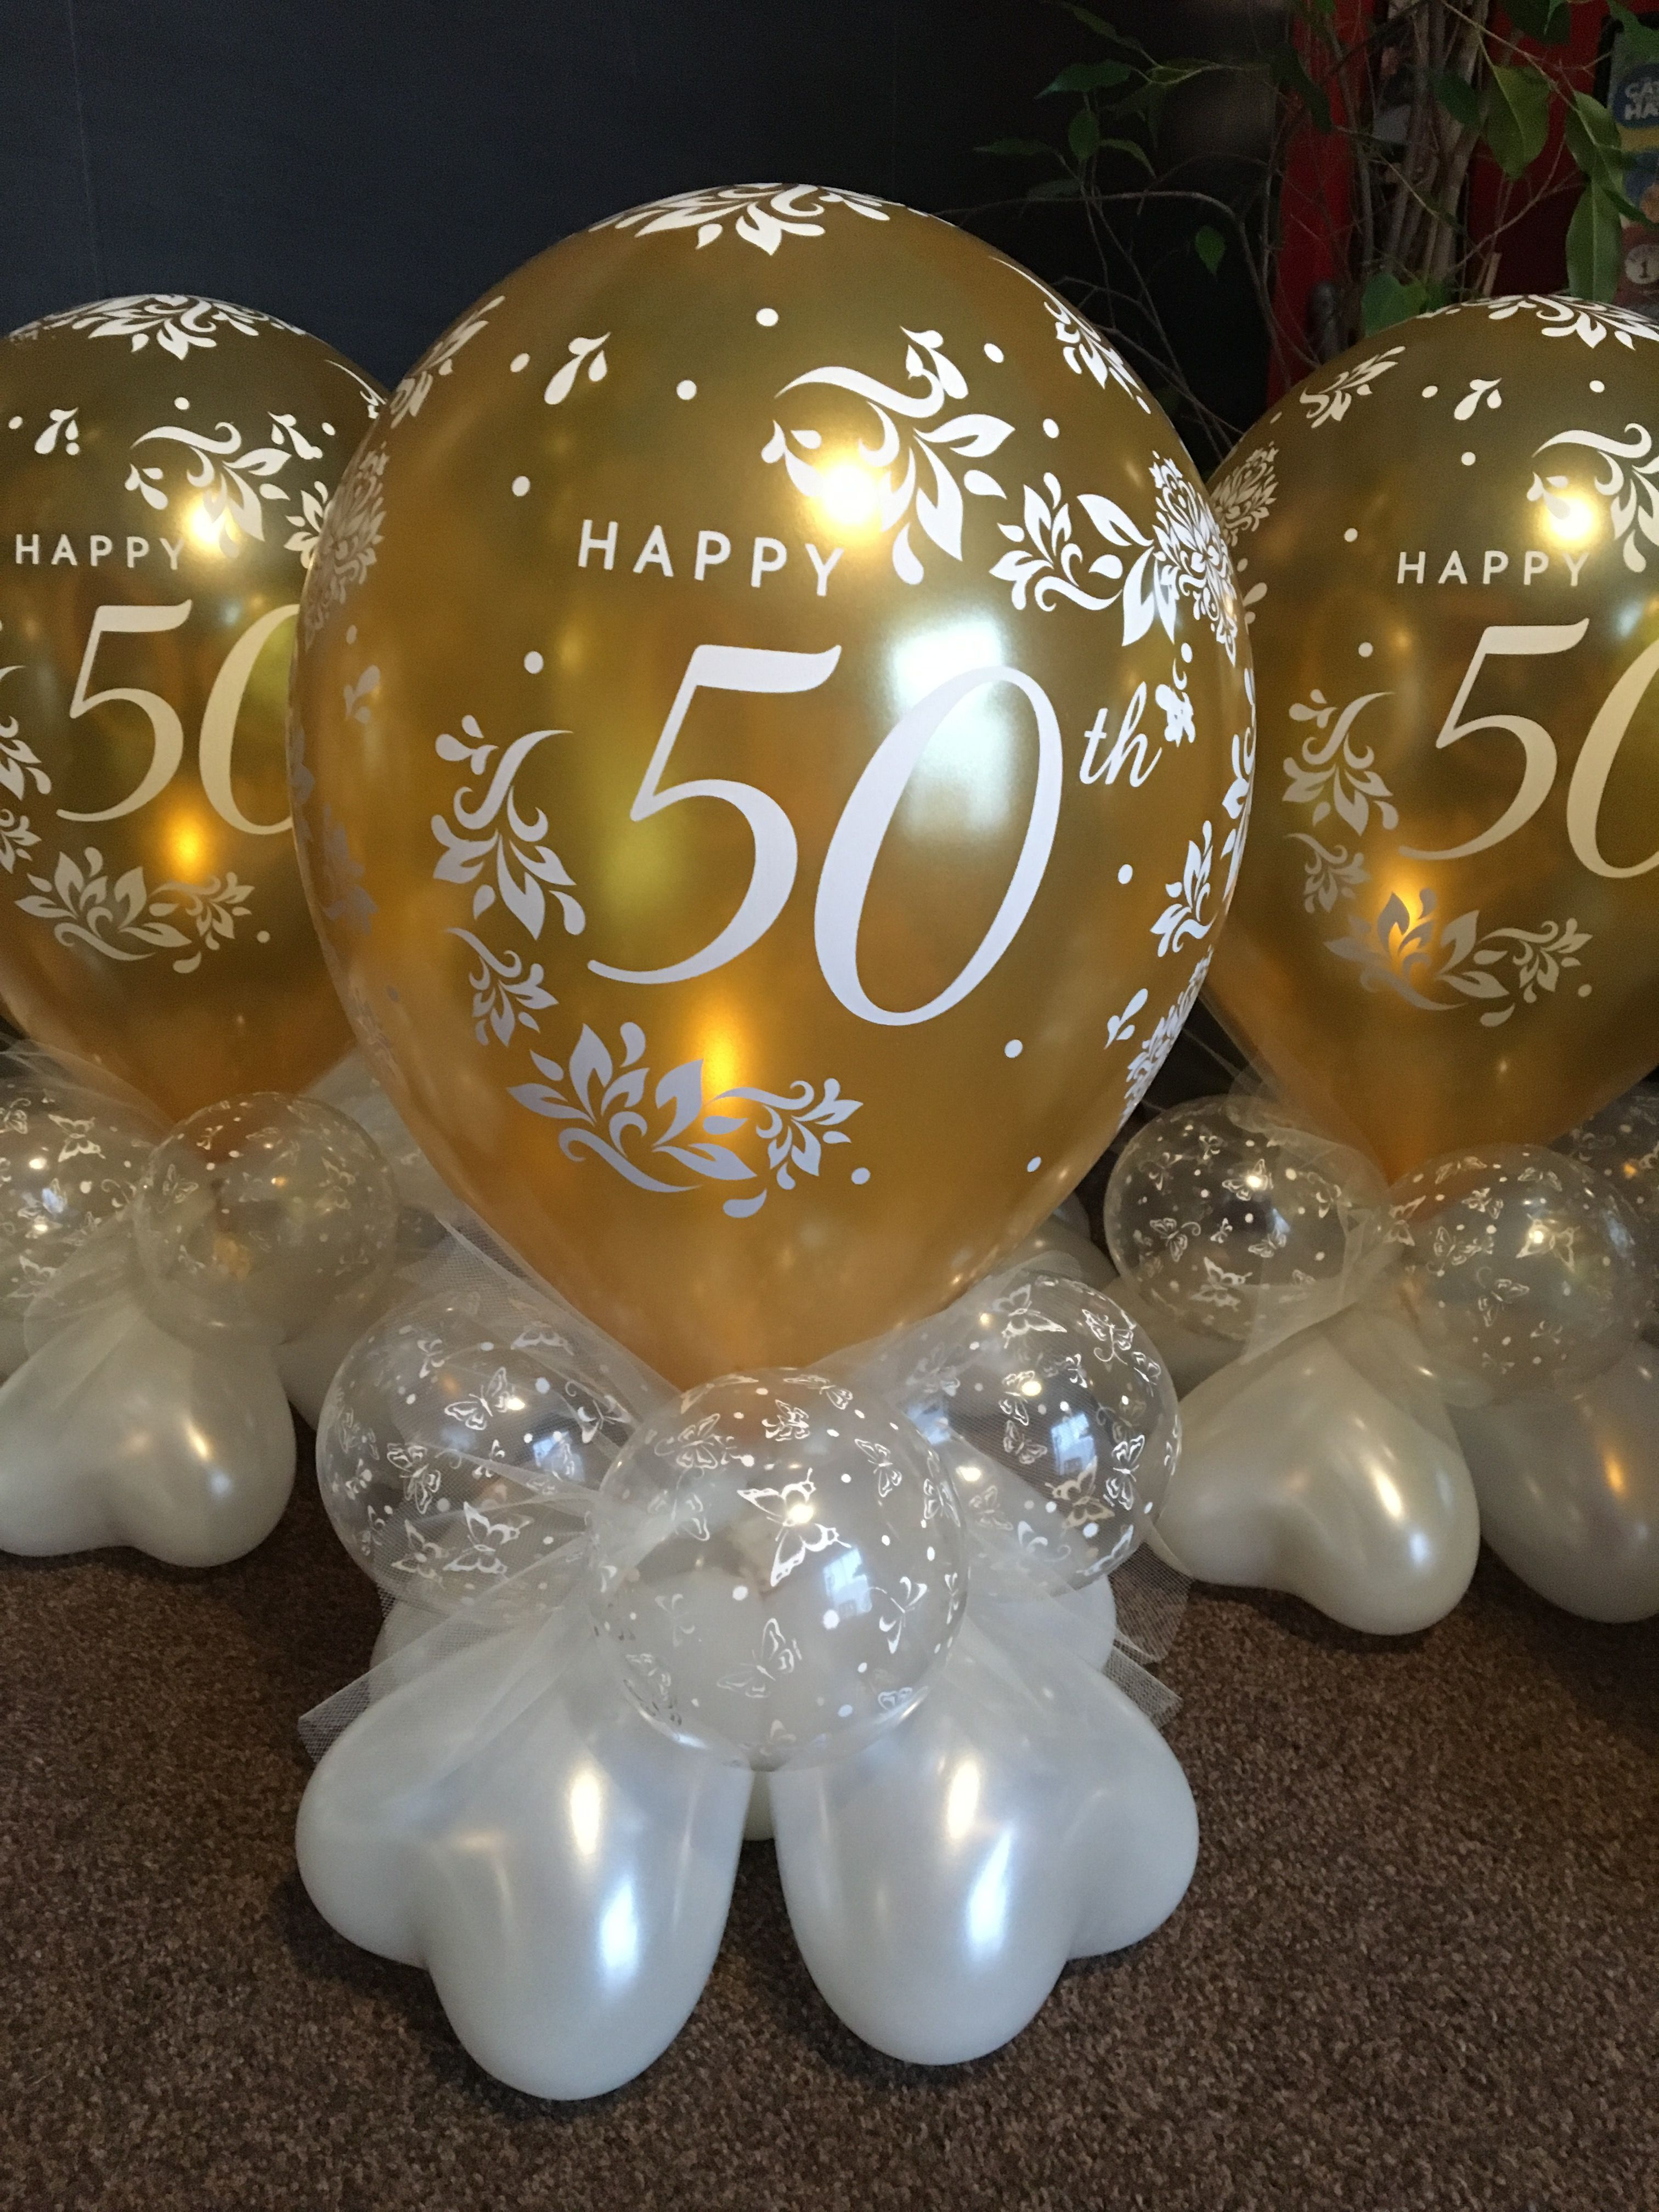 Golden Wedding Anniversary Bluemoonoccasions Golden Wedding Anniver In 2020 50th Wedding Anniversary Party 50th Birthday Party Decorations Wedding Anniversary Party